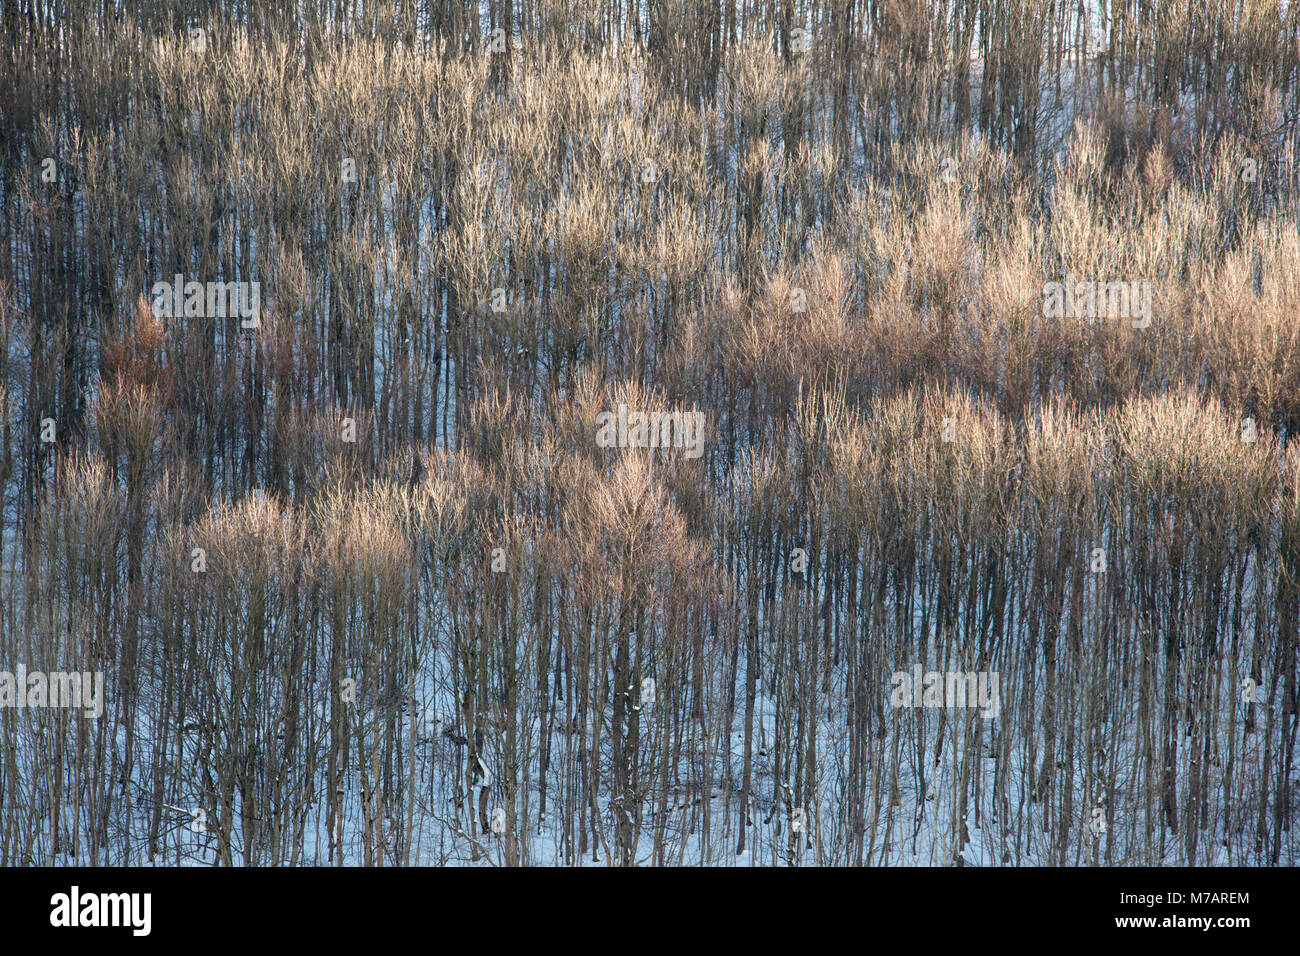 Forest in the winter, Abtsroda, Rhoen Mountain, Hesse, Germany - Stock Image